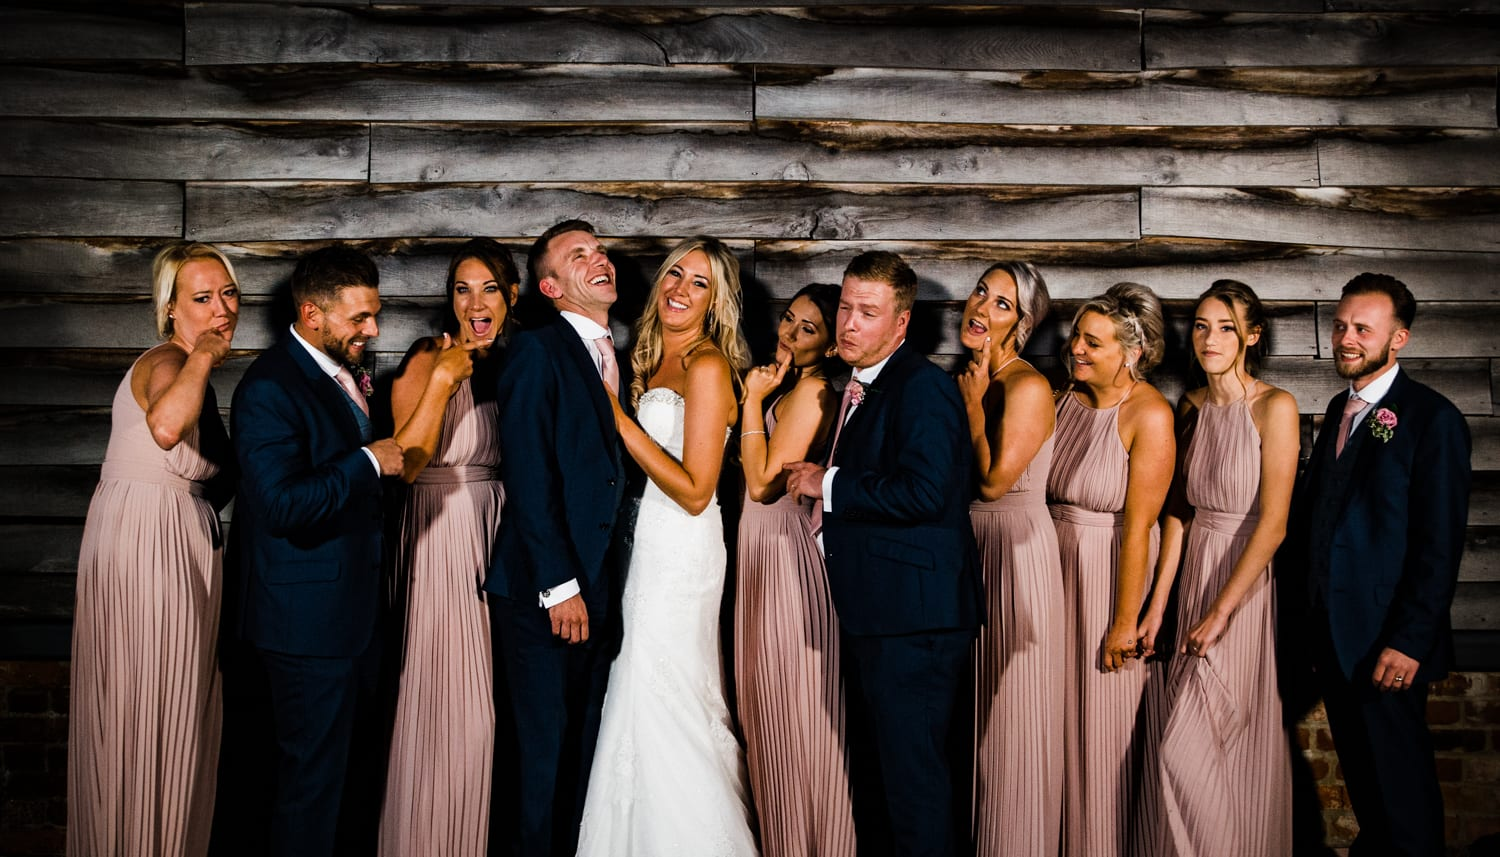 bridesmaids and groomsmen - wedding photography Essex